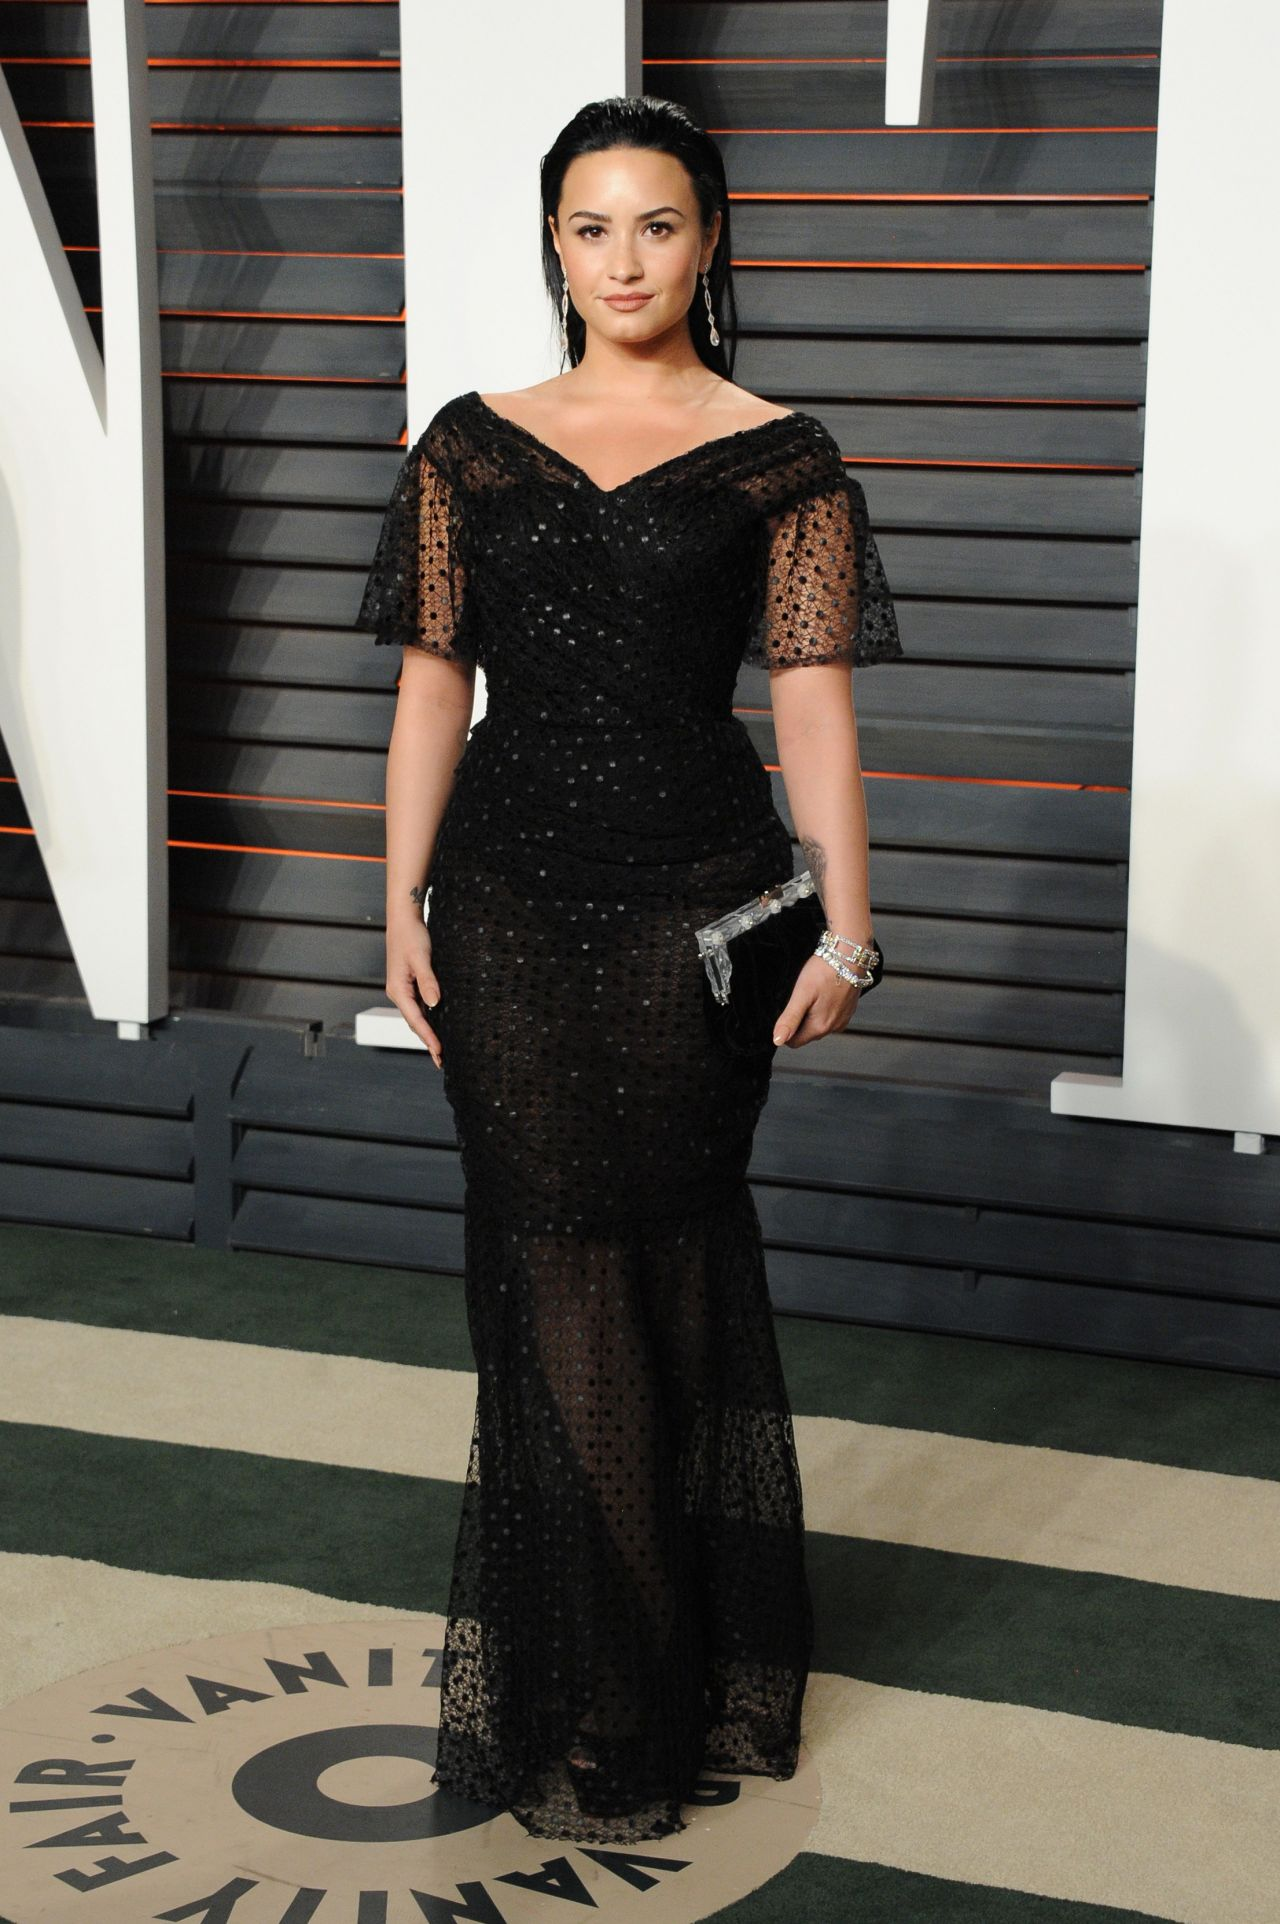 demi-lovato-2016-vanity-fair-oscar-party-in-beverly-hills-ca-14